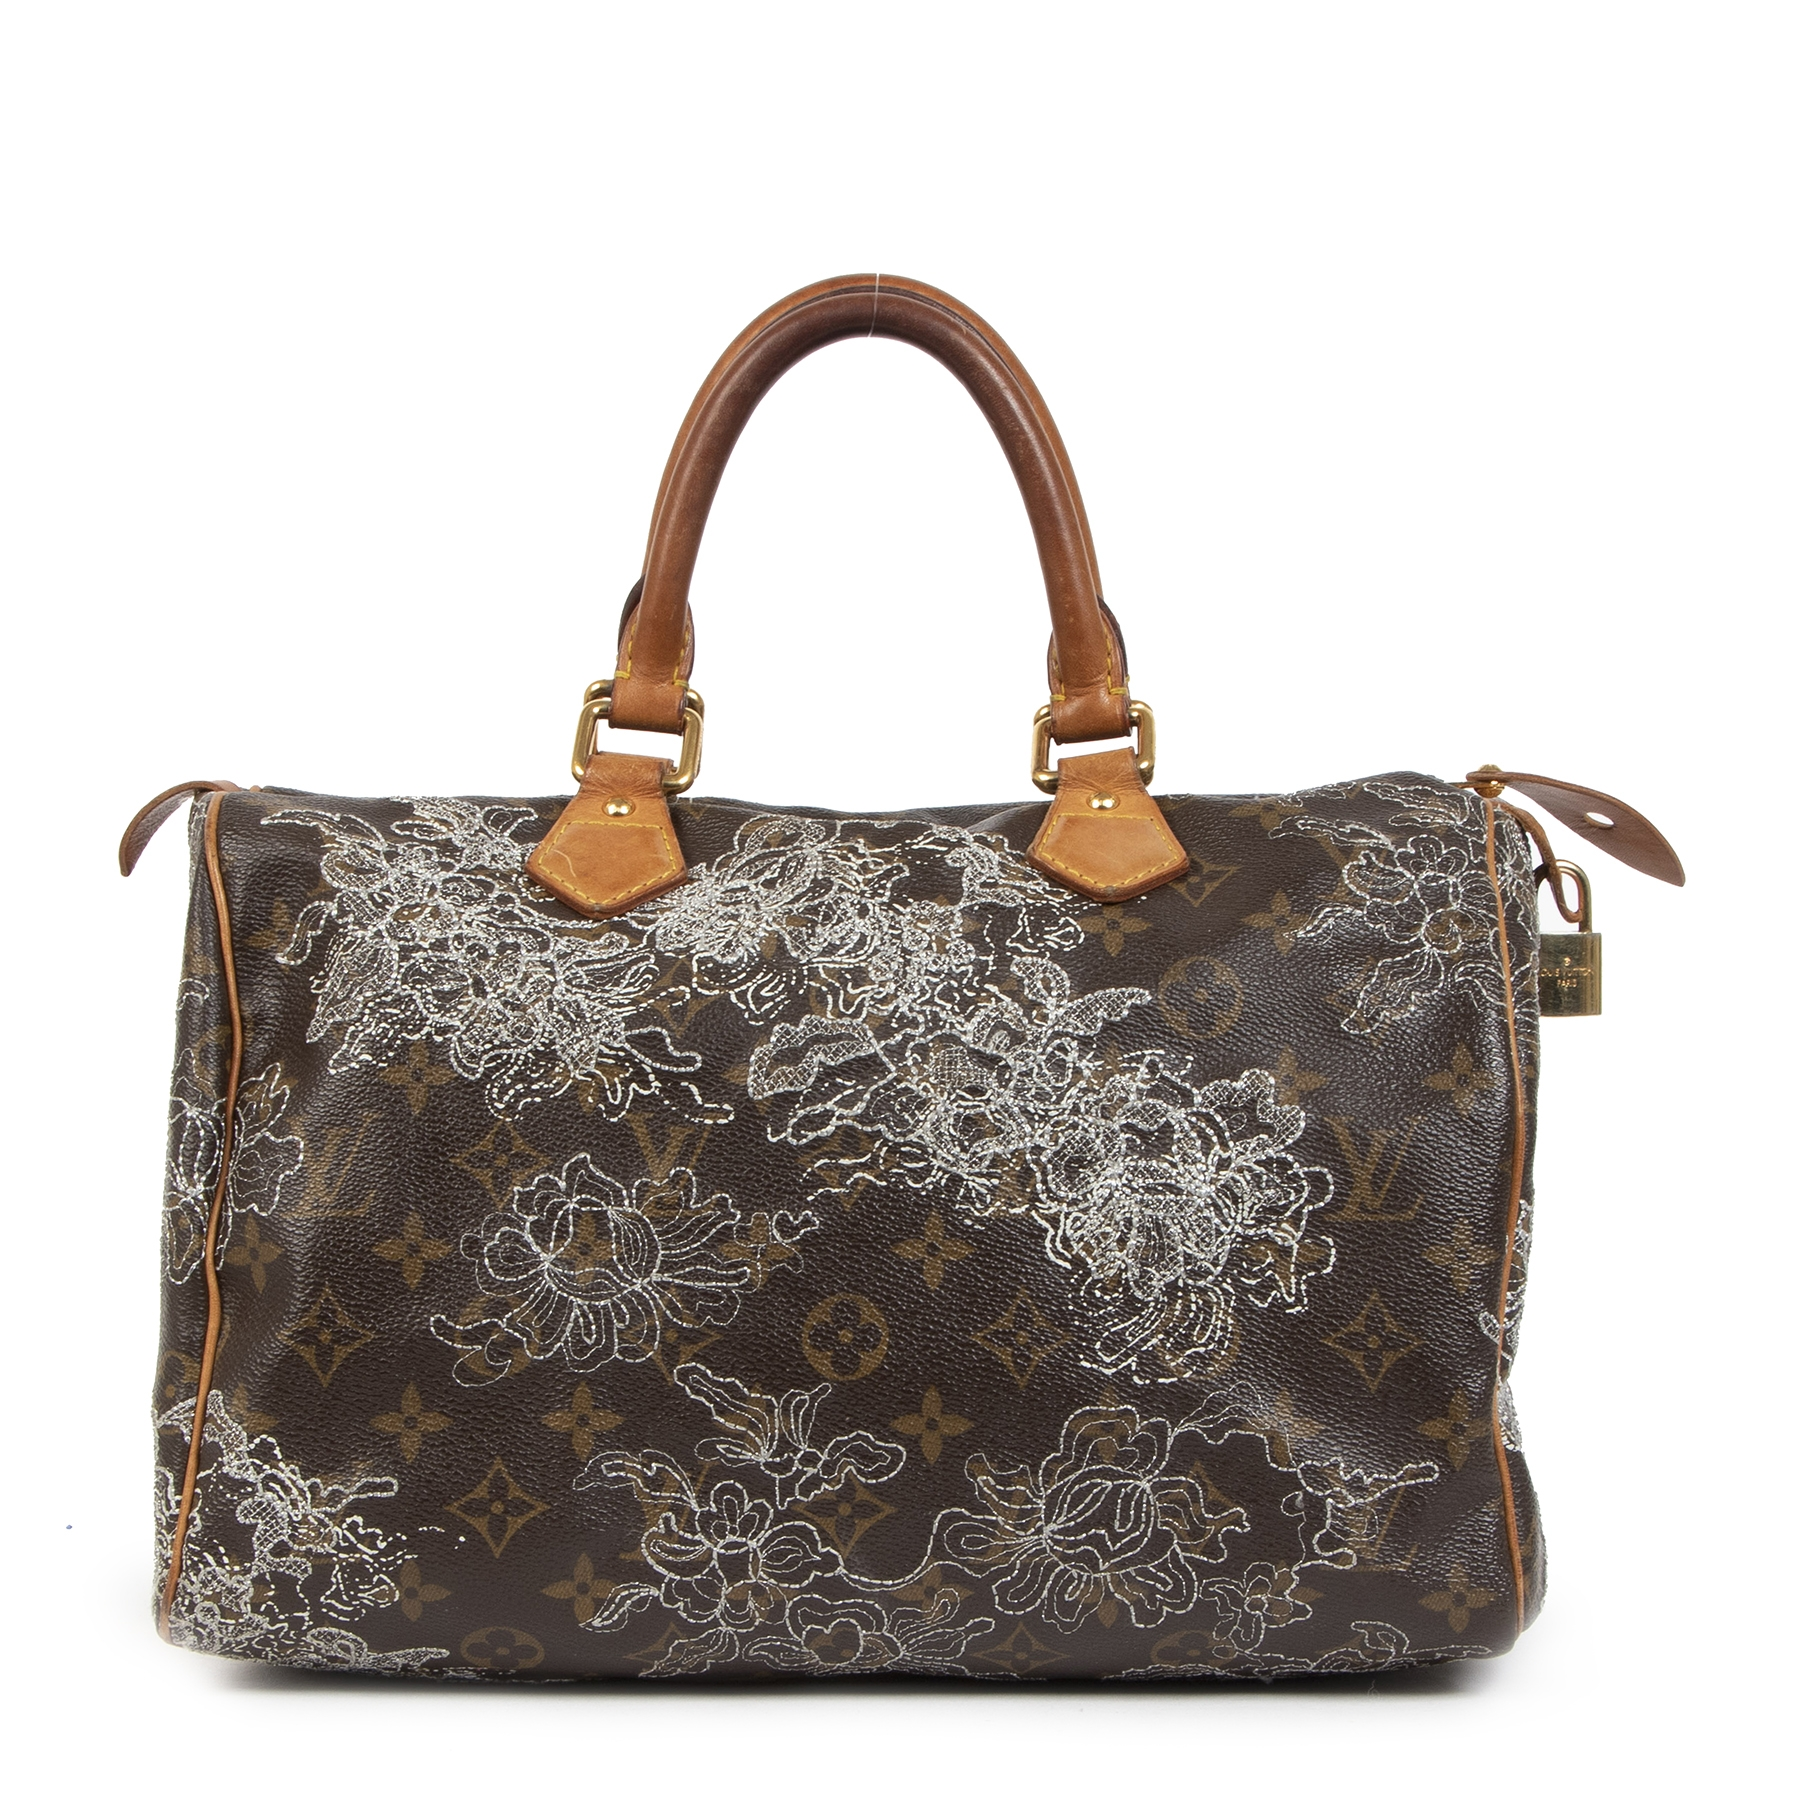 Authentieke tweedehands vintage Louis Vuitton Limited Edition Speedy Dentelle 30 Bag koop online webshop LabelLOV